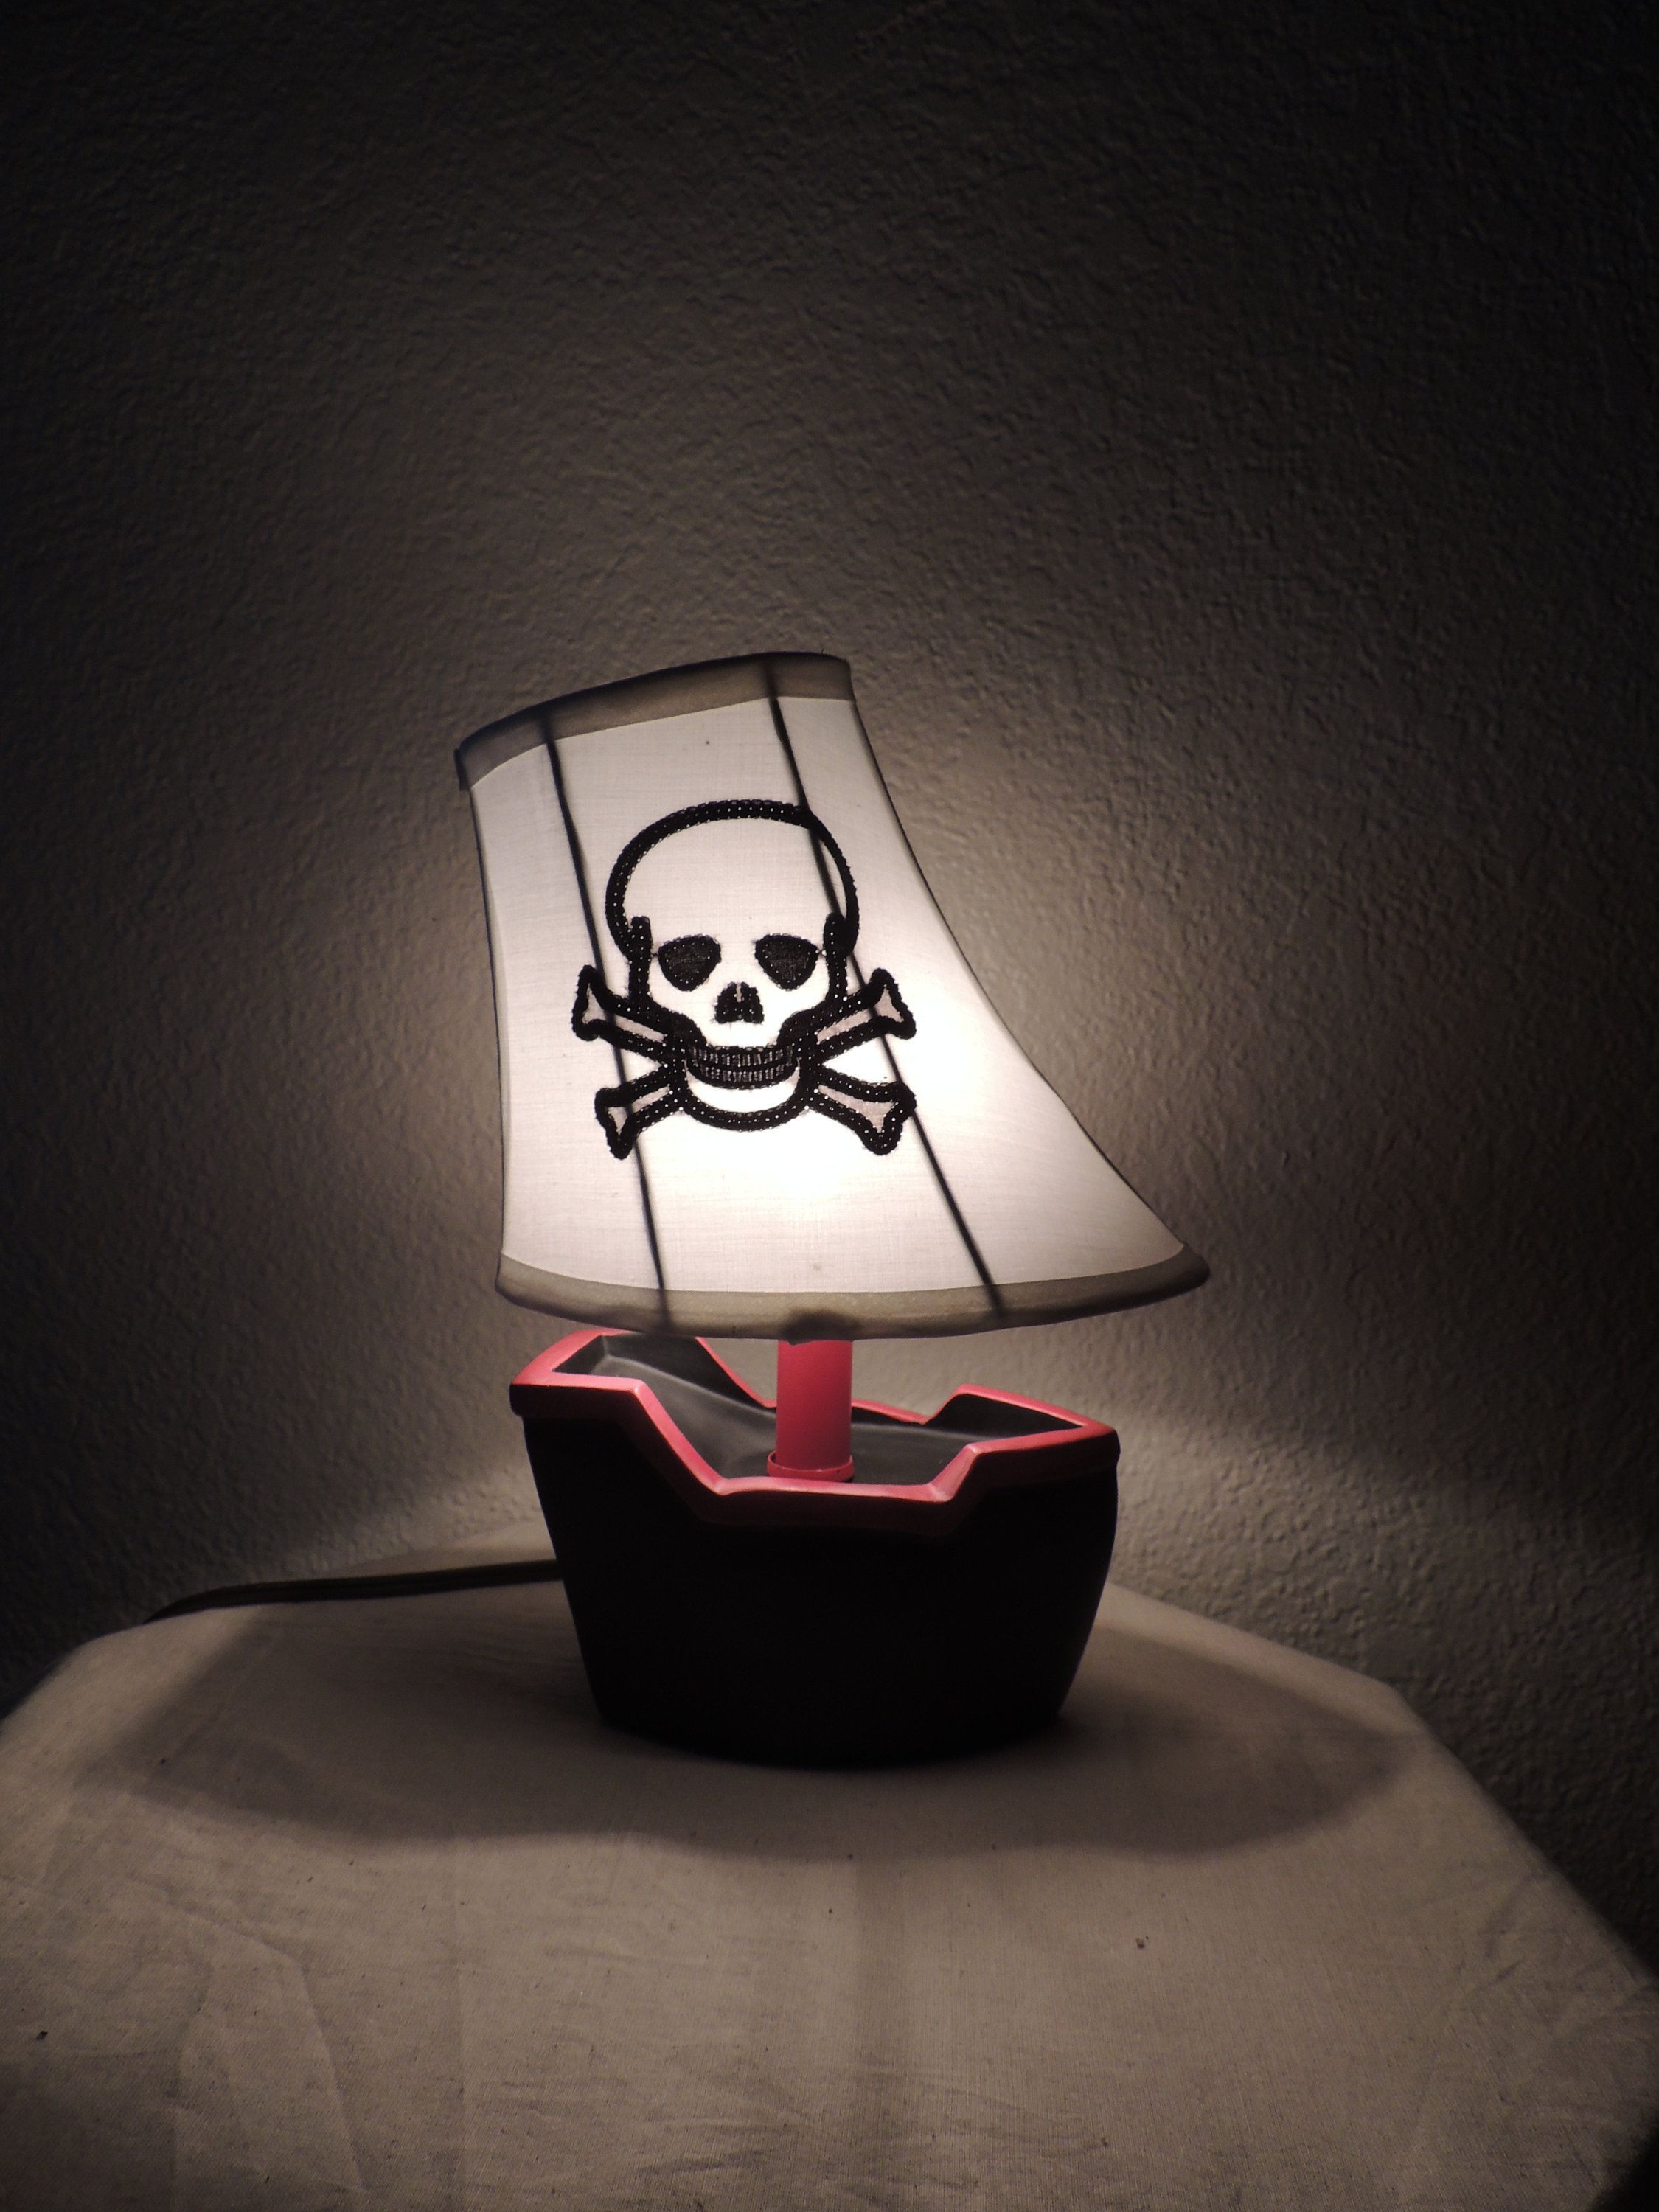 Pirate Theme Lamp Light For Kids Baby S Room Decor Pirate Ship Skull And Cross Bones Shade Red Black And Pirate Lamp Baby Room Decor Elephant Table Lamp